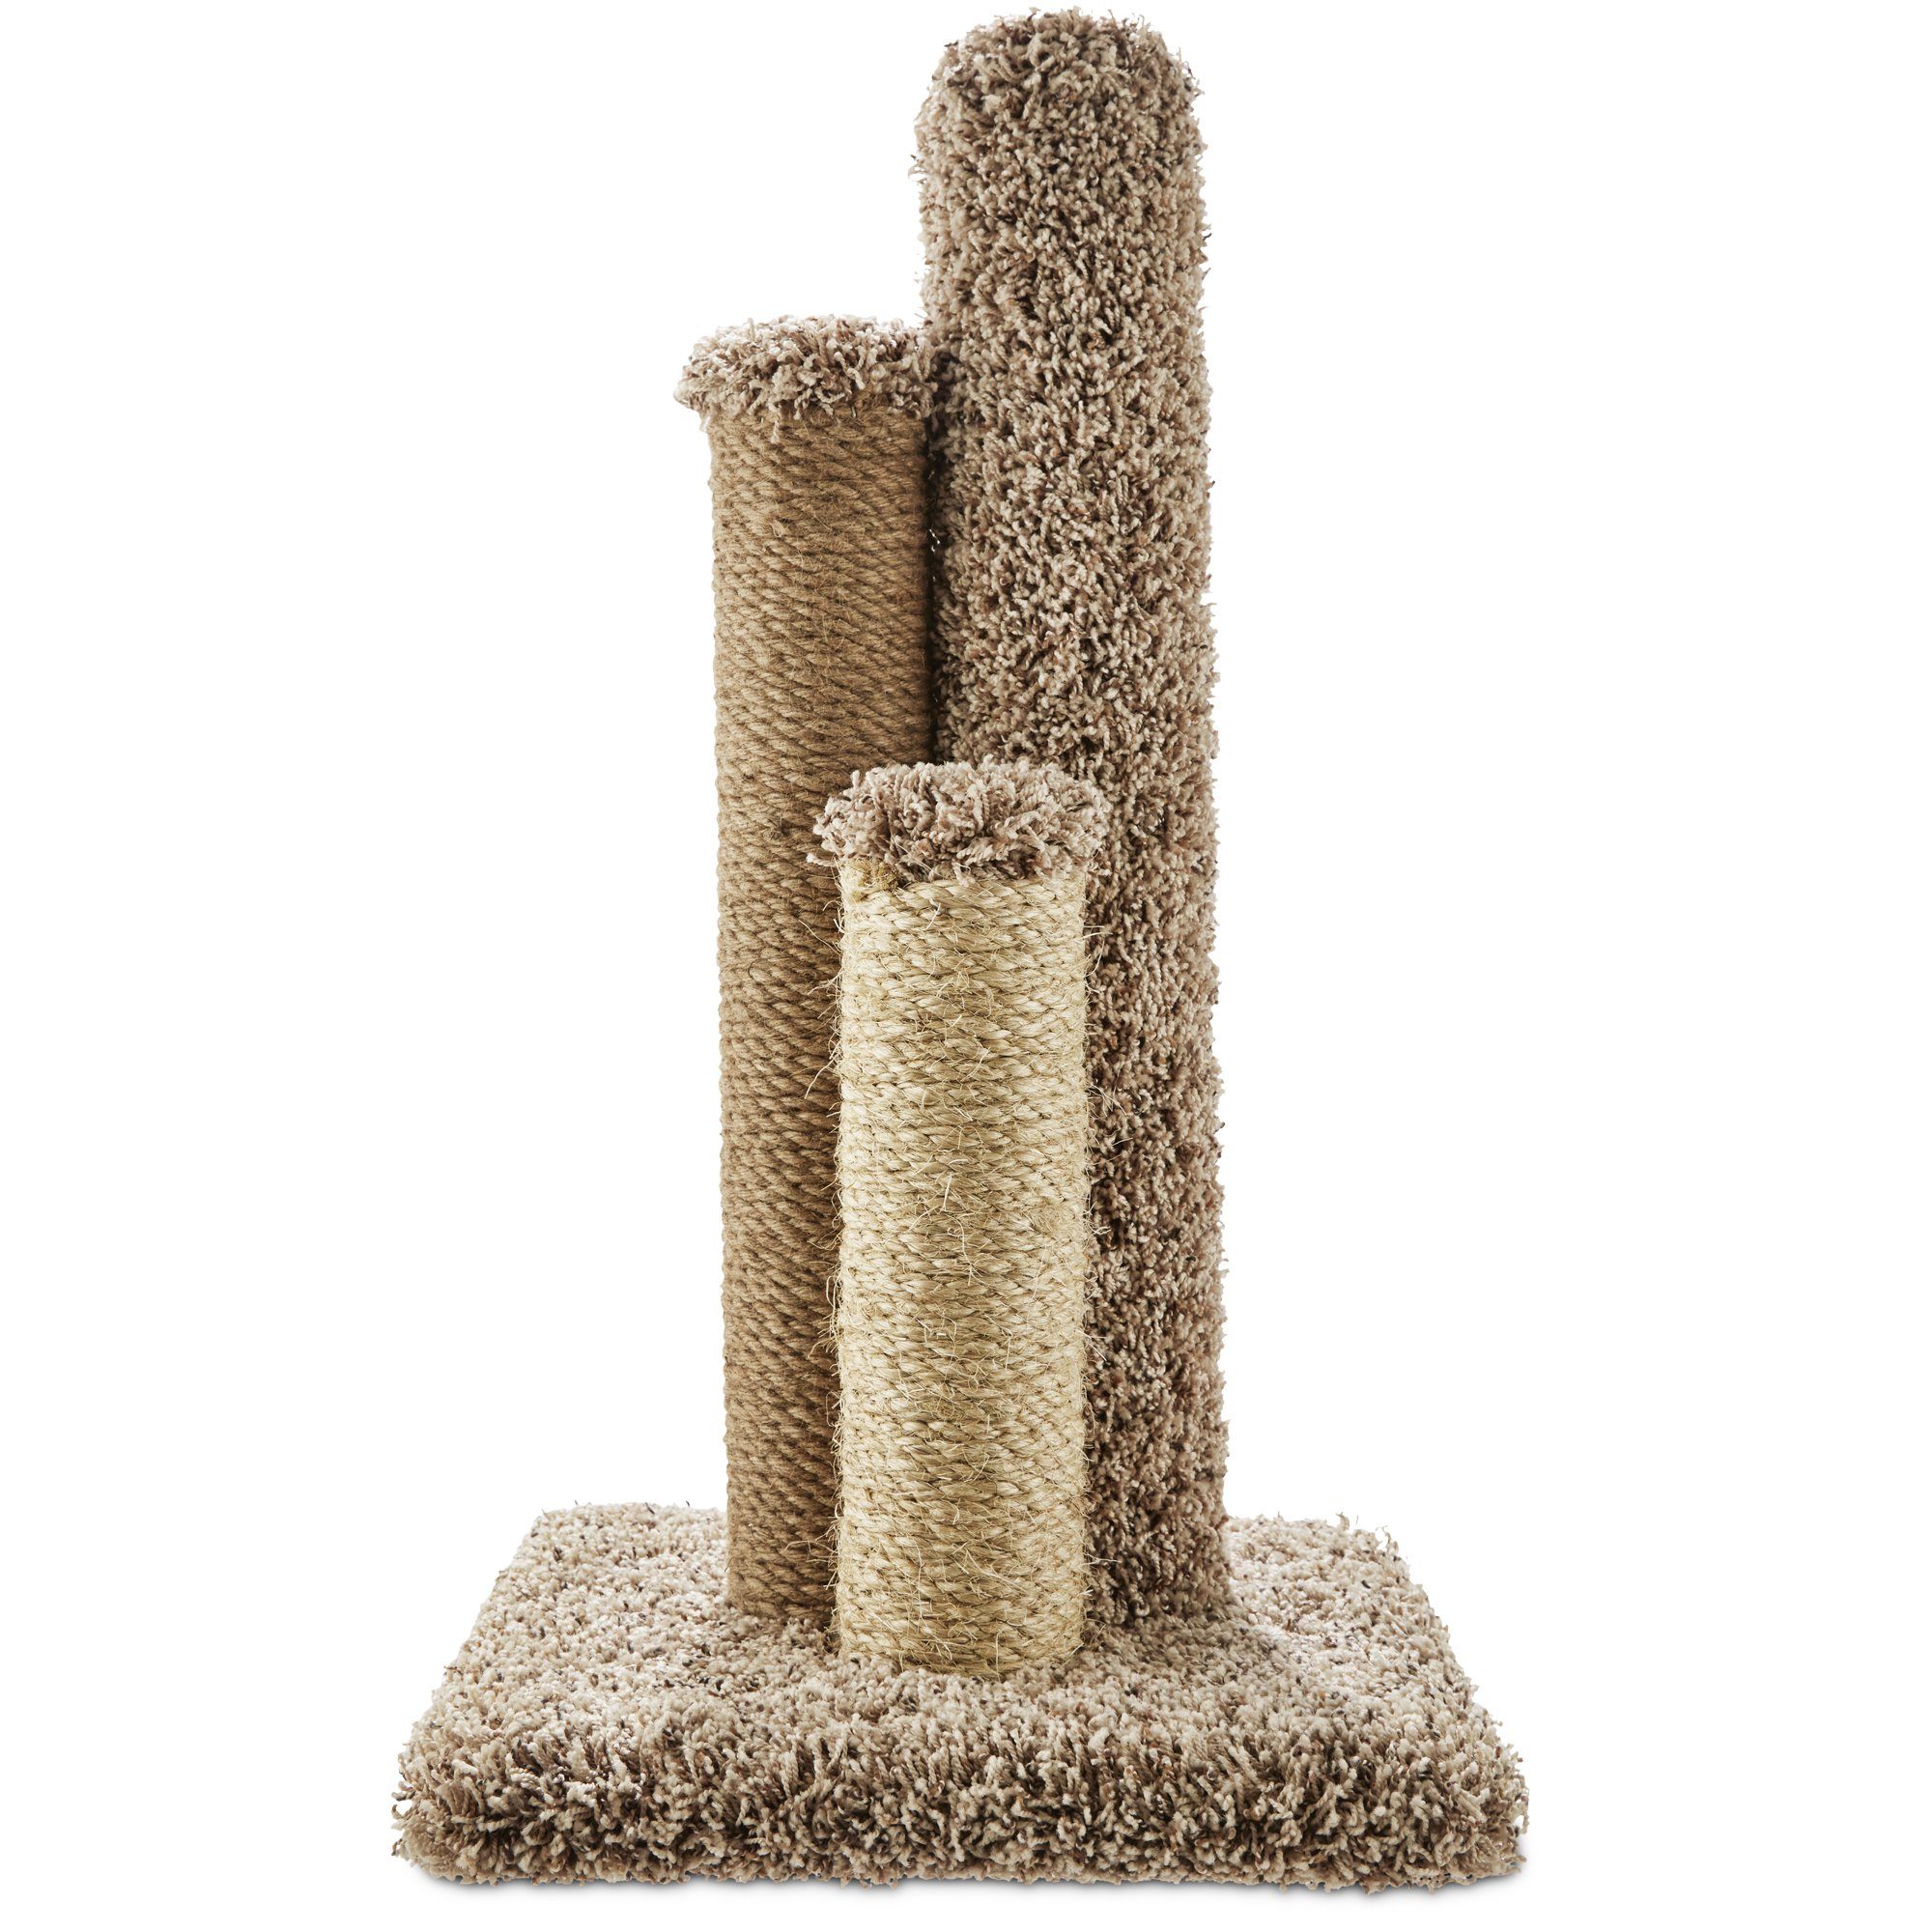 treating flea bites on humans with vinegar